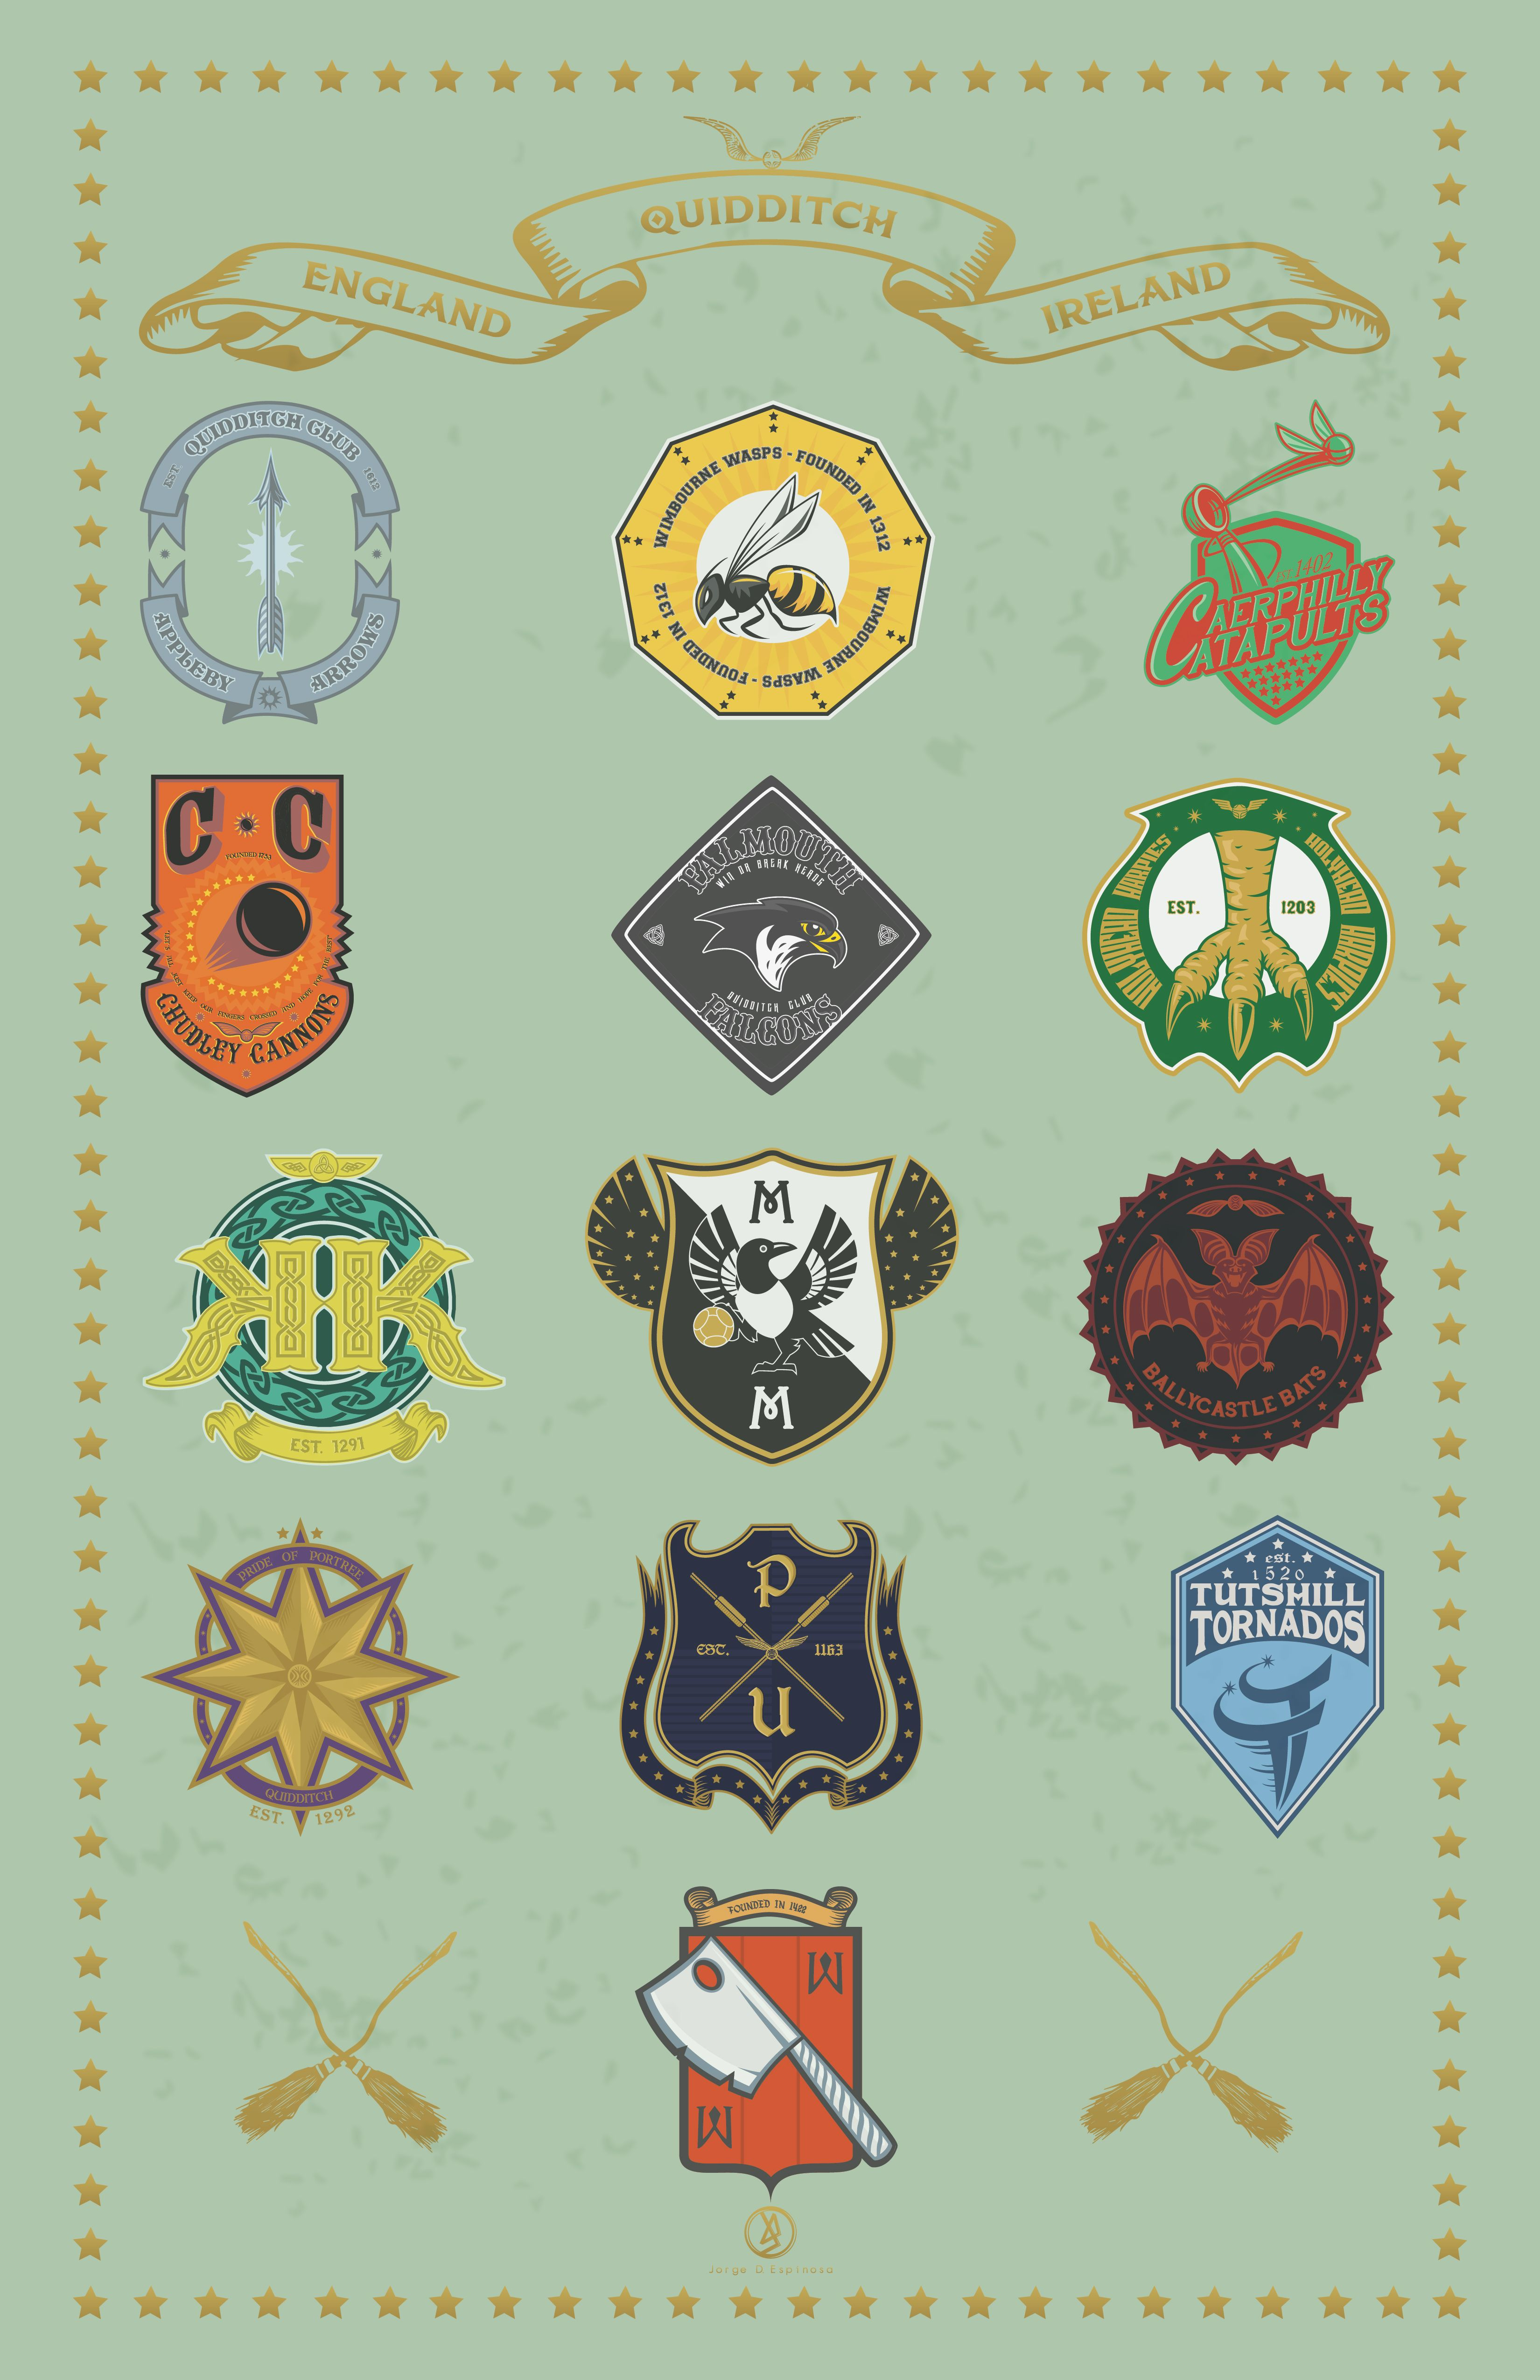 Harry Potter Quidditch Teams Logos Wizard World By Jorge D Espinosa Harry Potter Logo Harry Potter Day Harry Potter Christmas Decorations